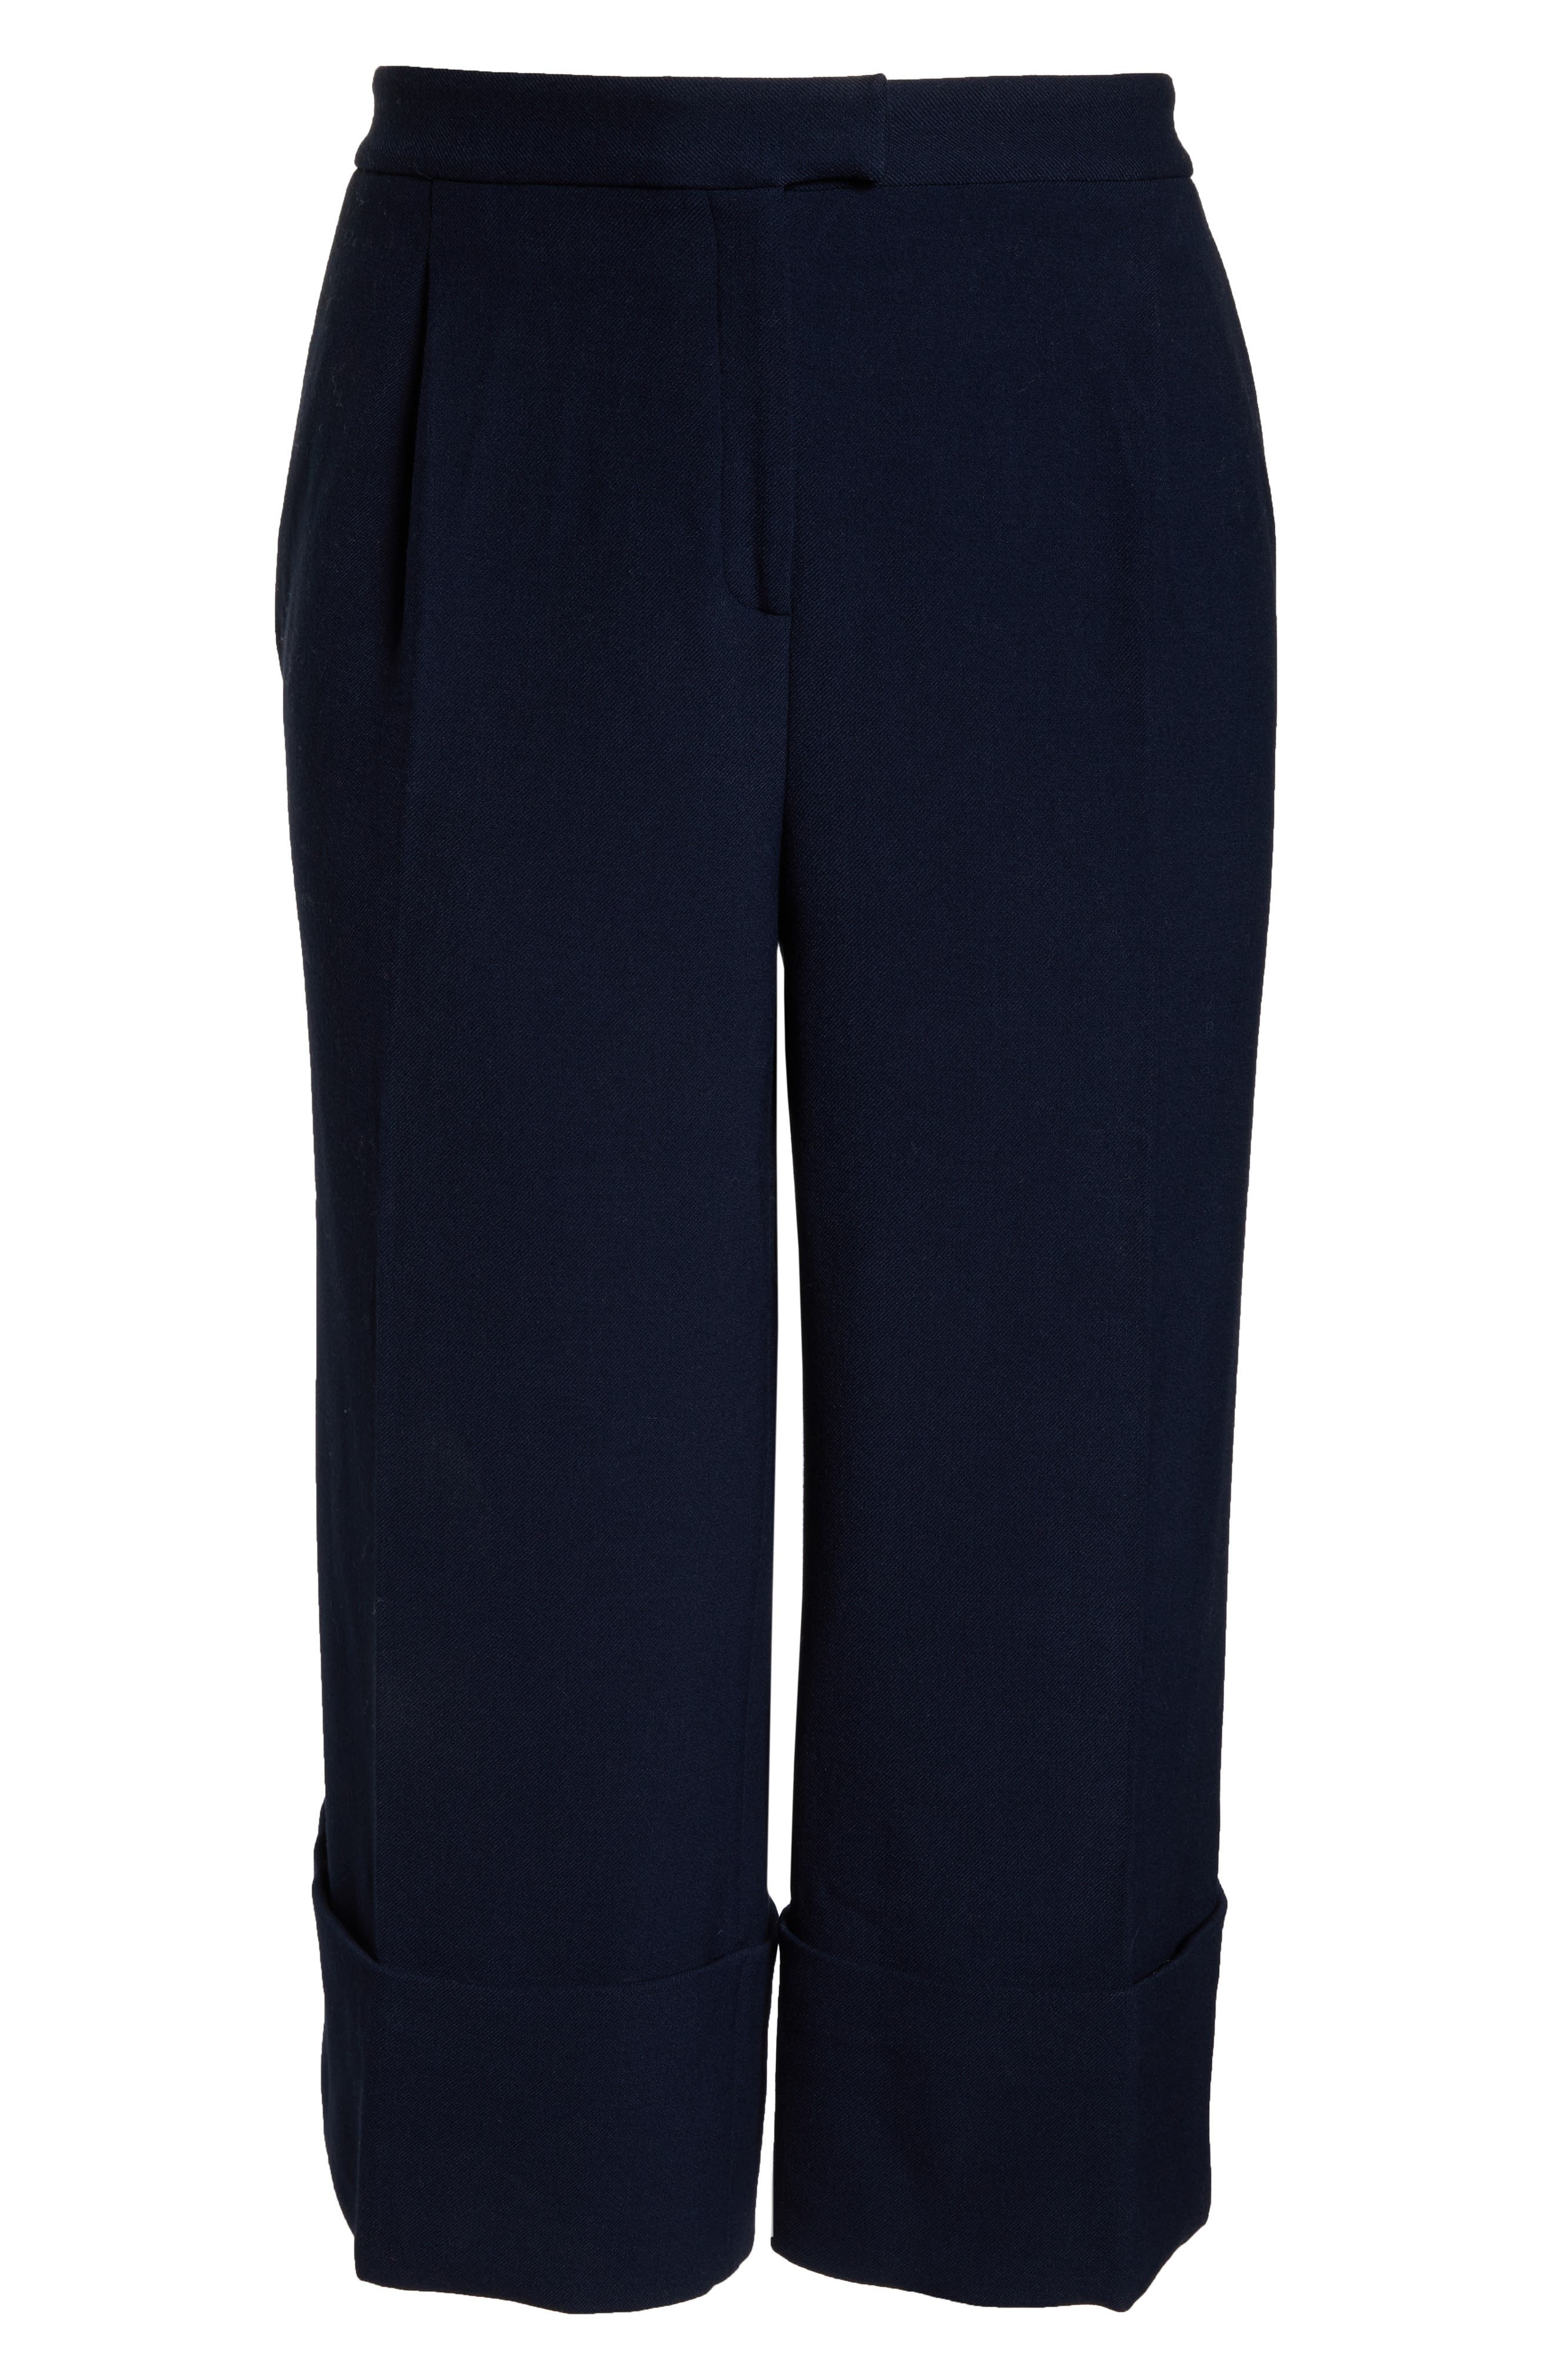 HALOGEN<SUP>®</SUP>,                             x Atlantic-Pacific High Waist Wide Cuff Ankle Pants,                             Alternate thumbnail 6, color,                             410